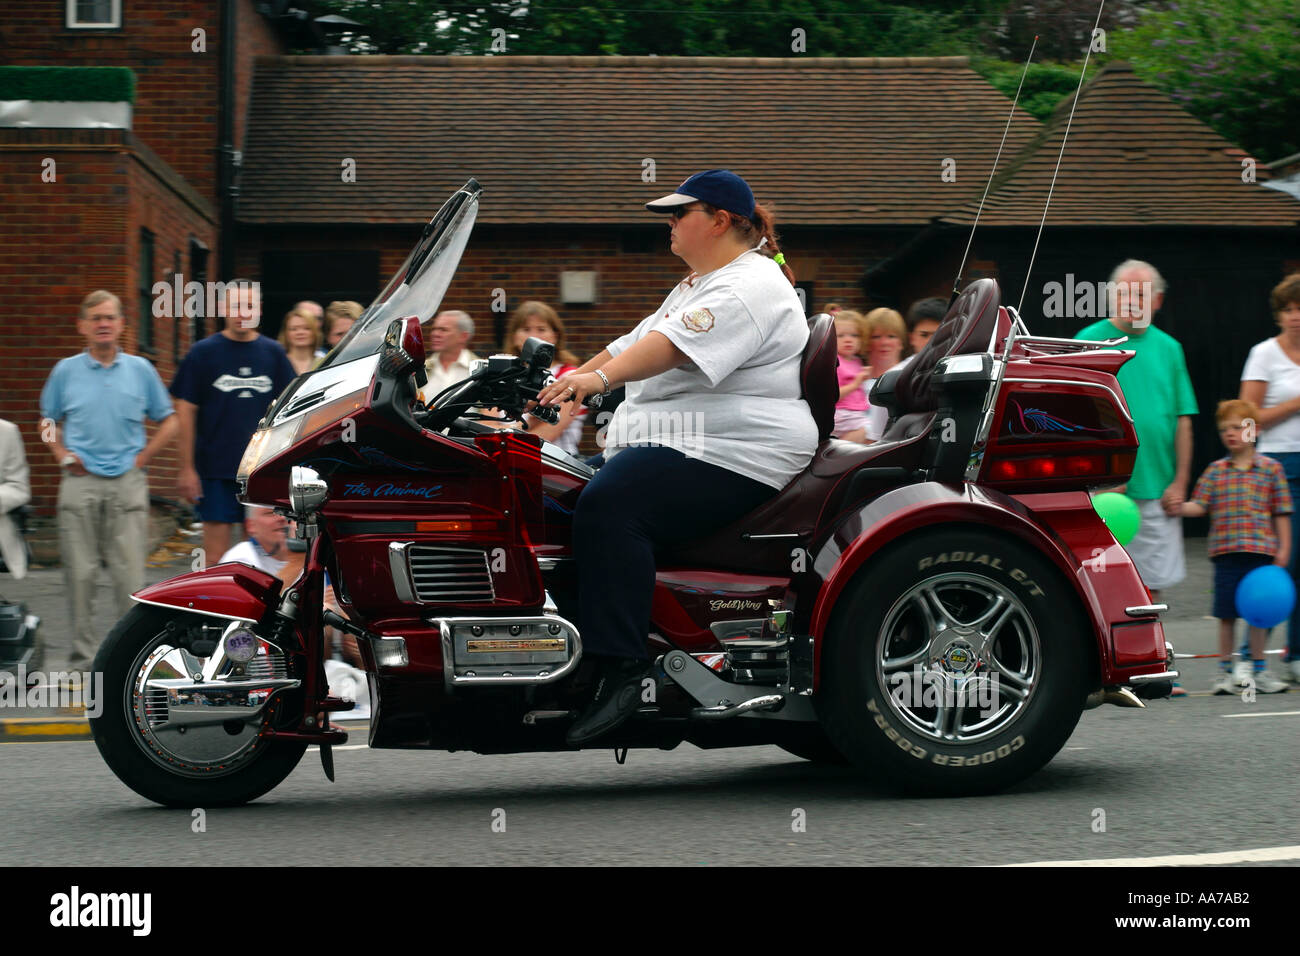 Honda Goldwing Trike >> Honda Goldwing trike on the move, rider not wearing a helmet Stock Photo: 686770 - Alamy